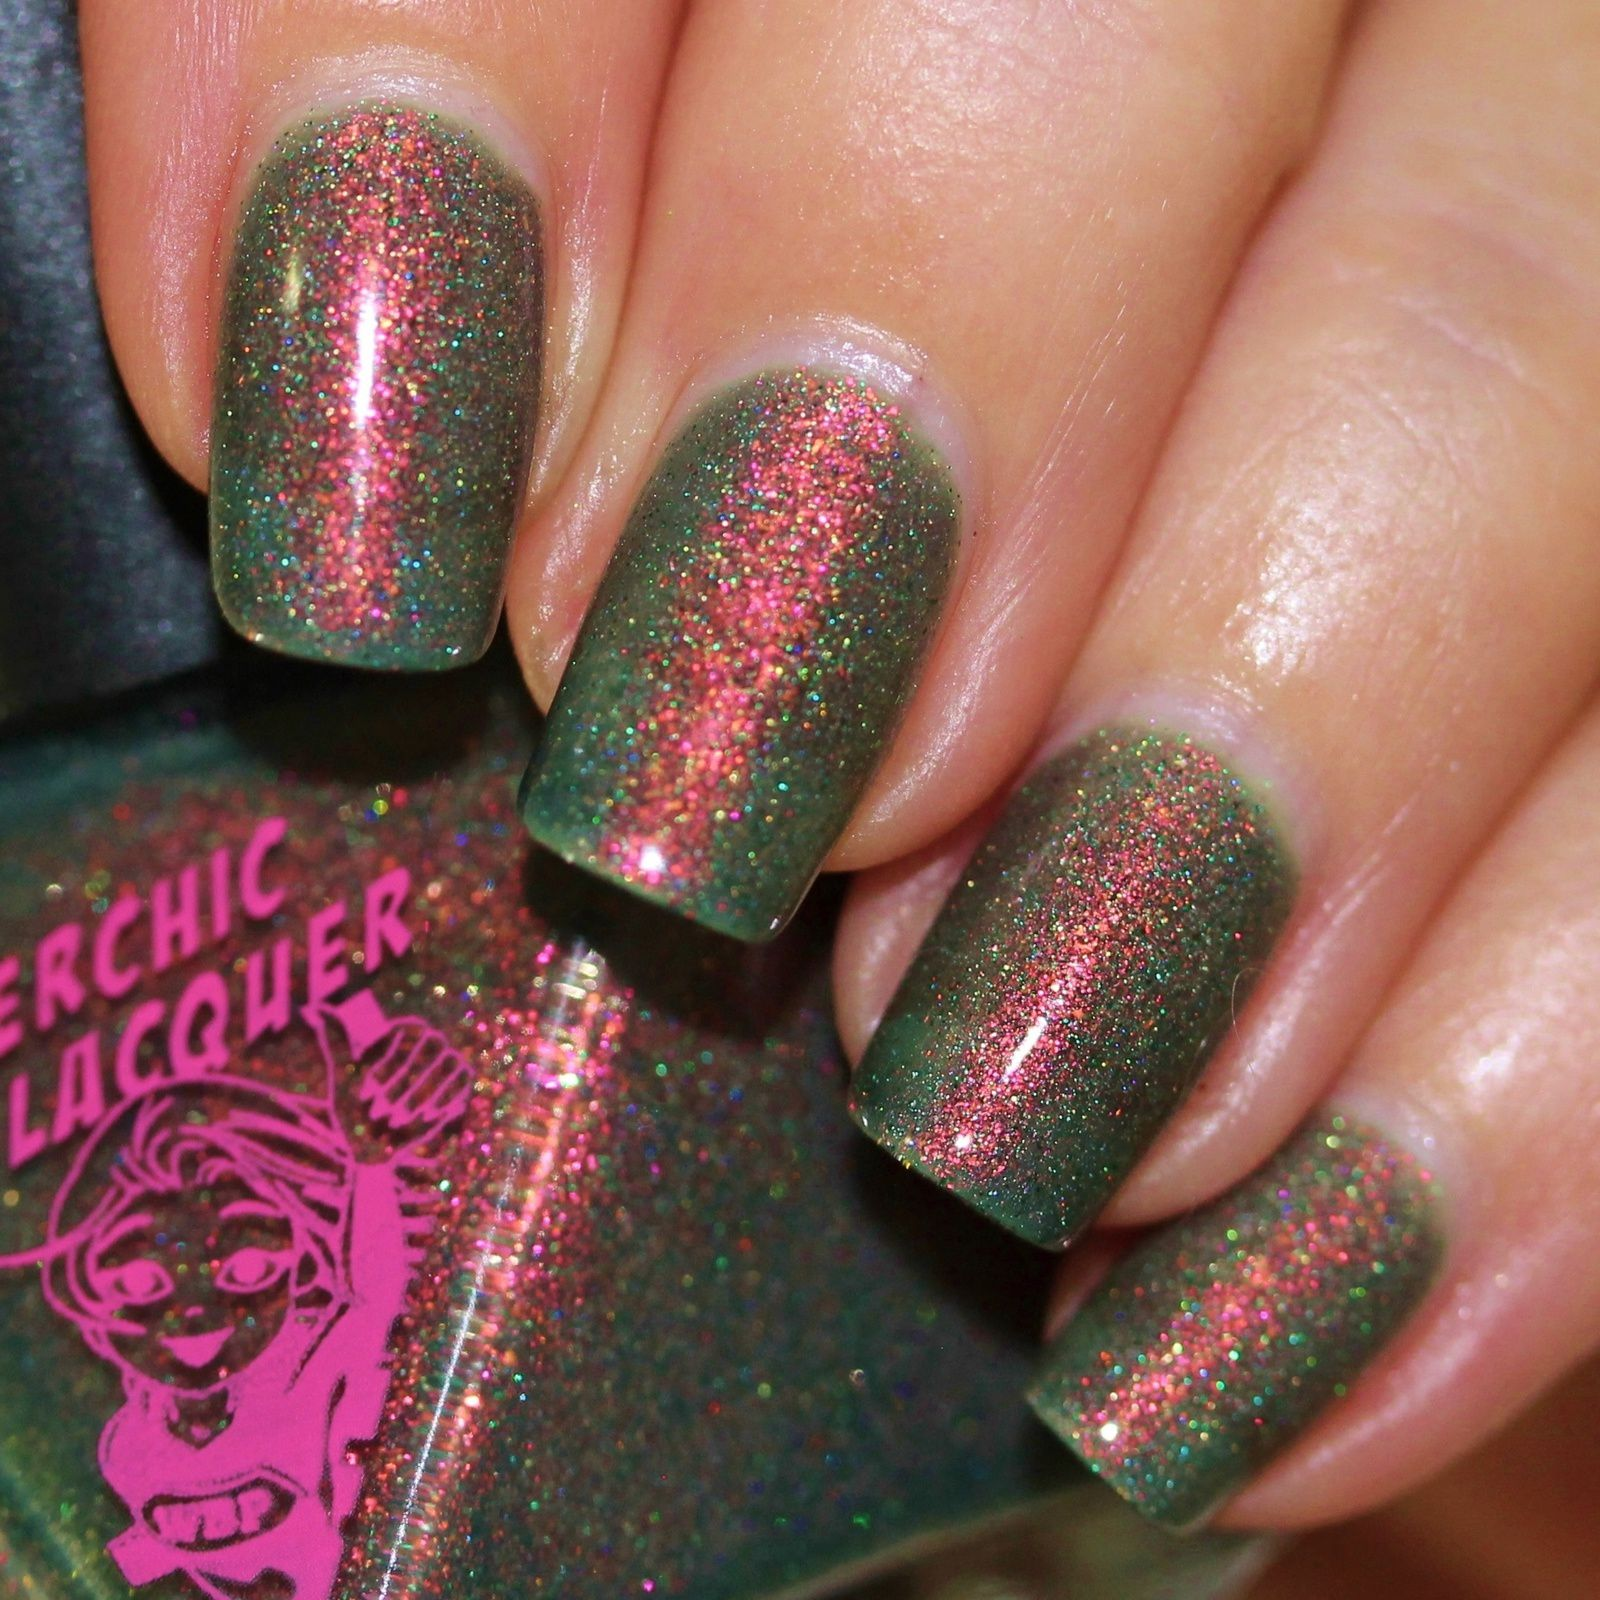 Duri Rejuvacote / Superchic Lacquer You don't Know Jack About My Beans / Sally Hansen Miracle Gel Top Coat